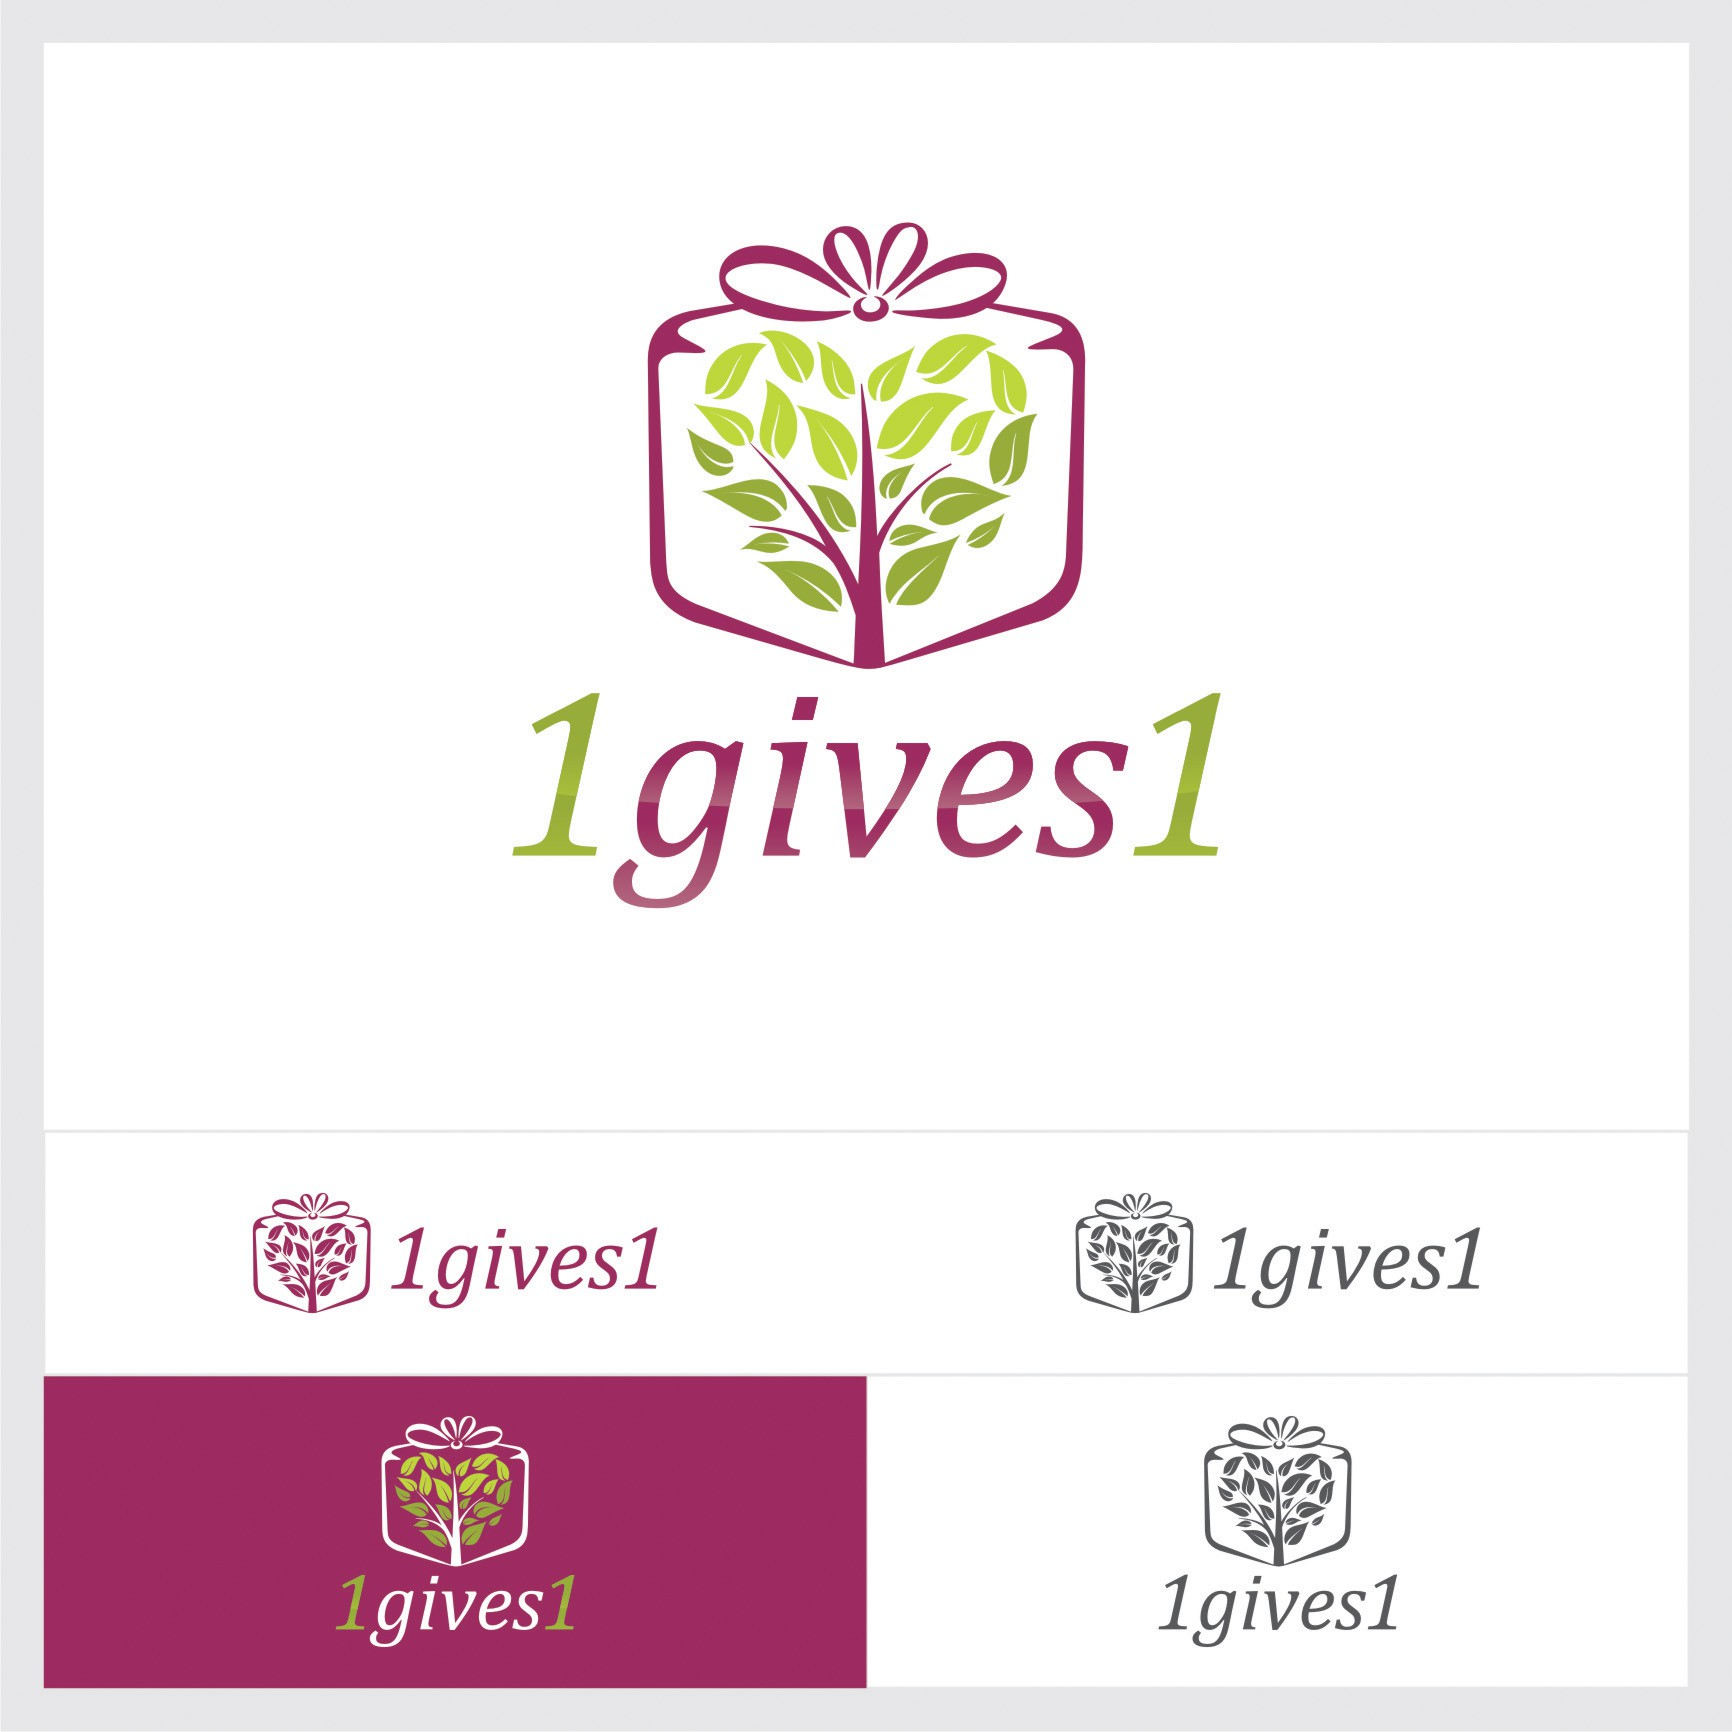 1gives1 wants to use your logo design to help families be healthier - make a difference today!